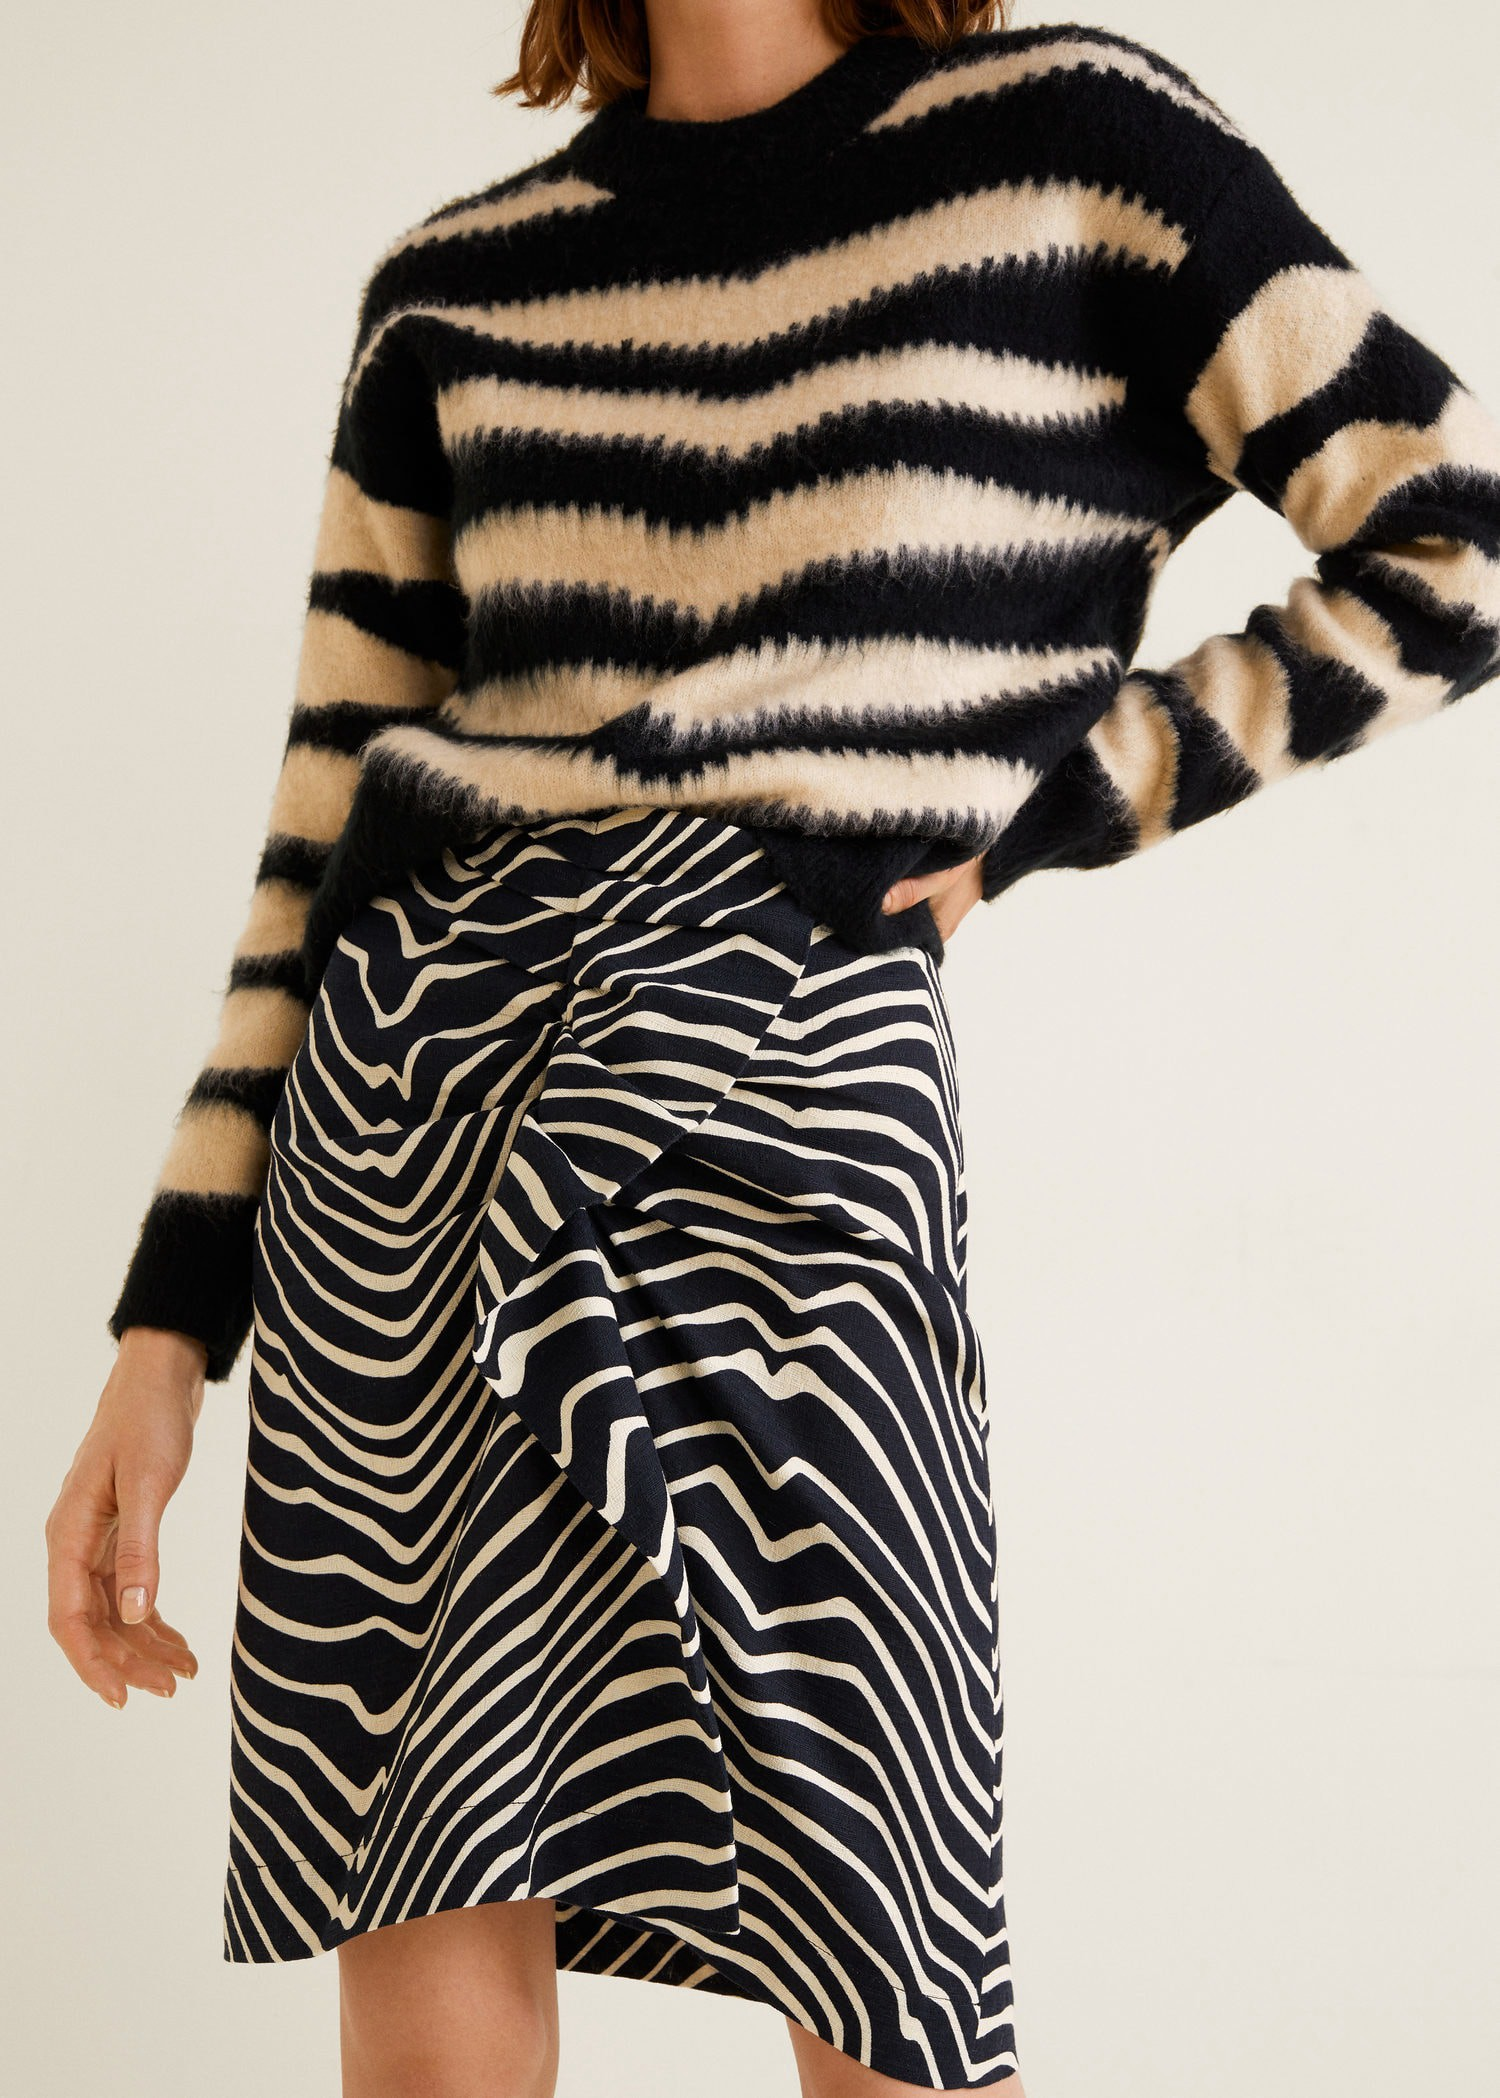 6e629122e4 Mango Printed Cotton Skirt - M. Find this Pin and ...